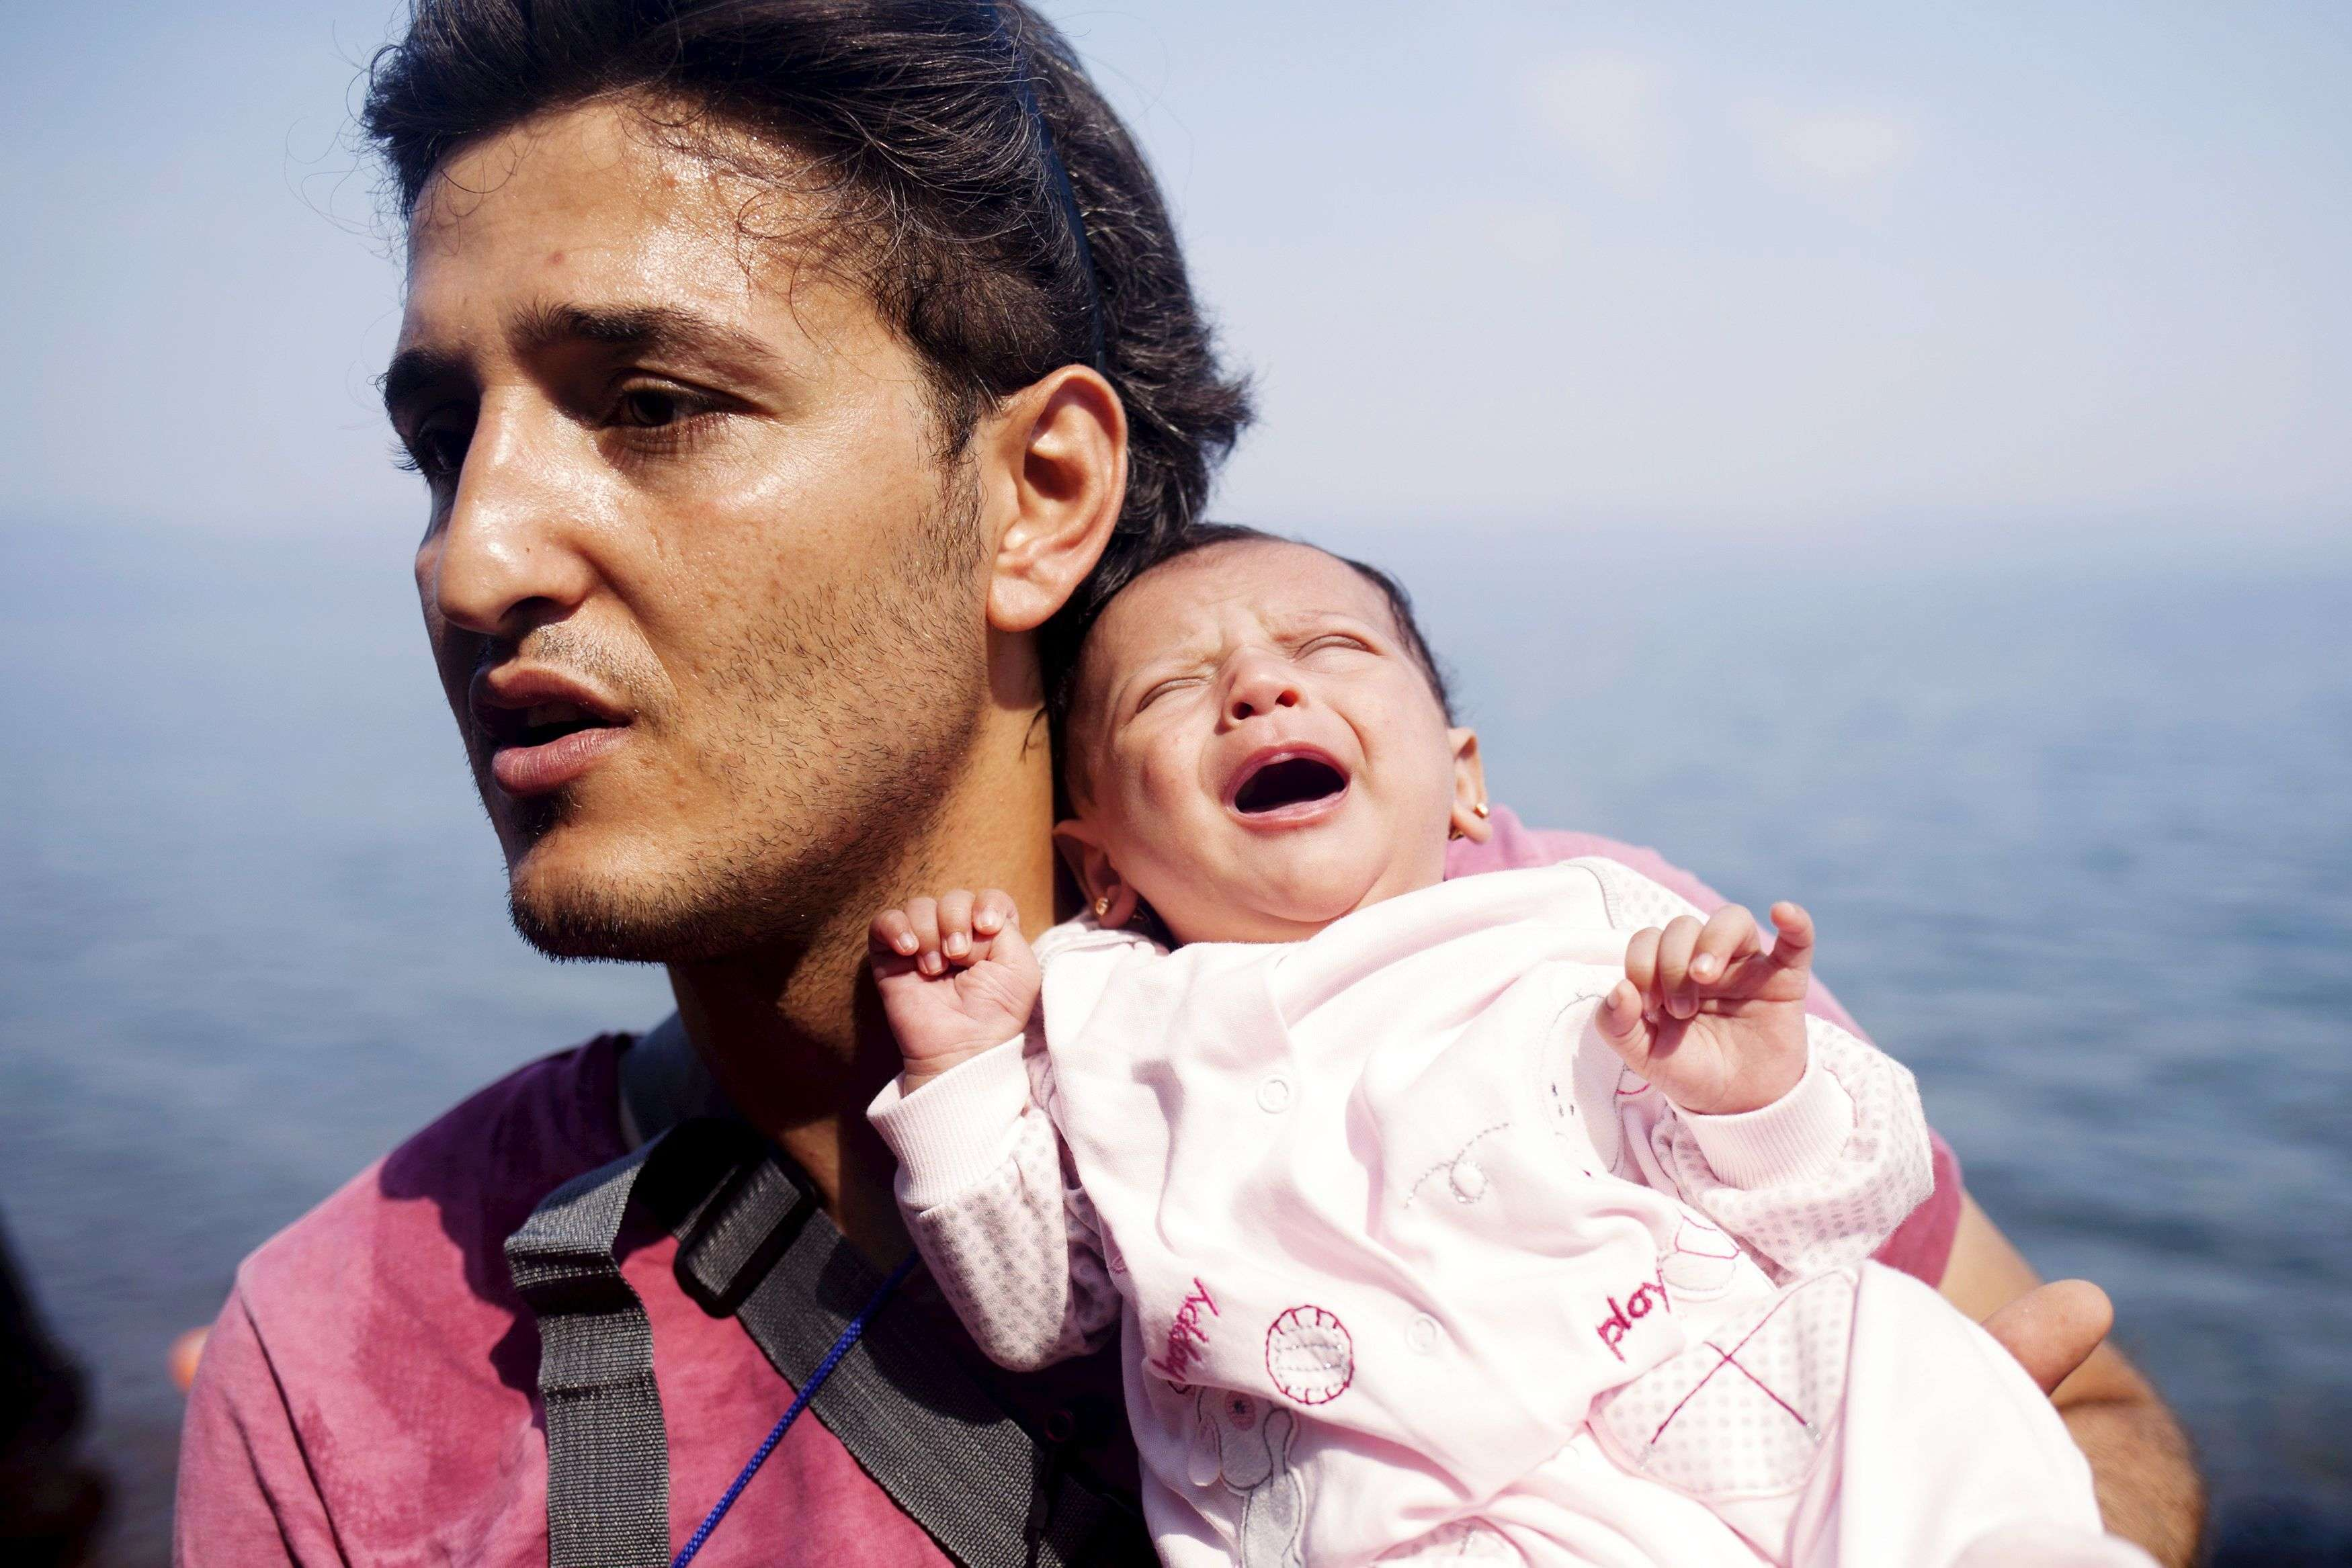 A Syrian refugee from Aleppo holds his one month old daughter moments after arriving on a dinghy on the Greek island of Lesbos. (REUTERS/Dimitris Michalakis)